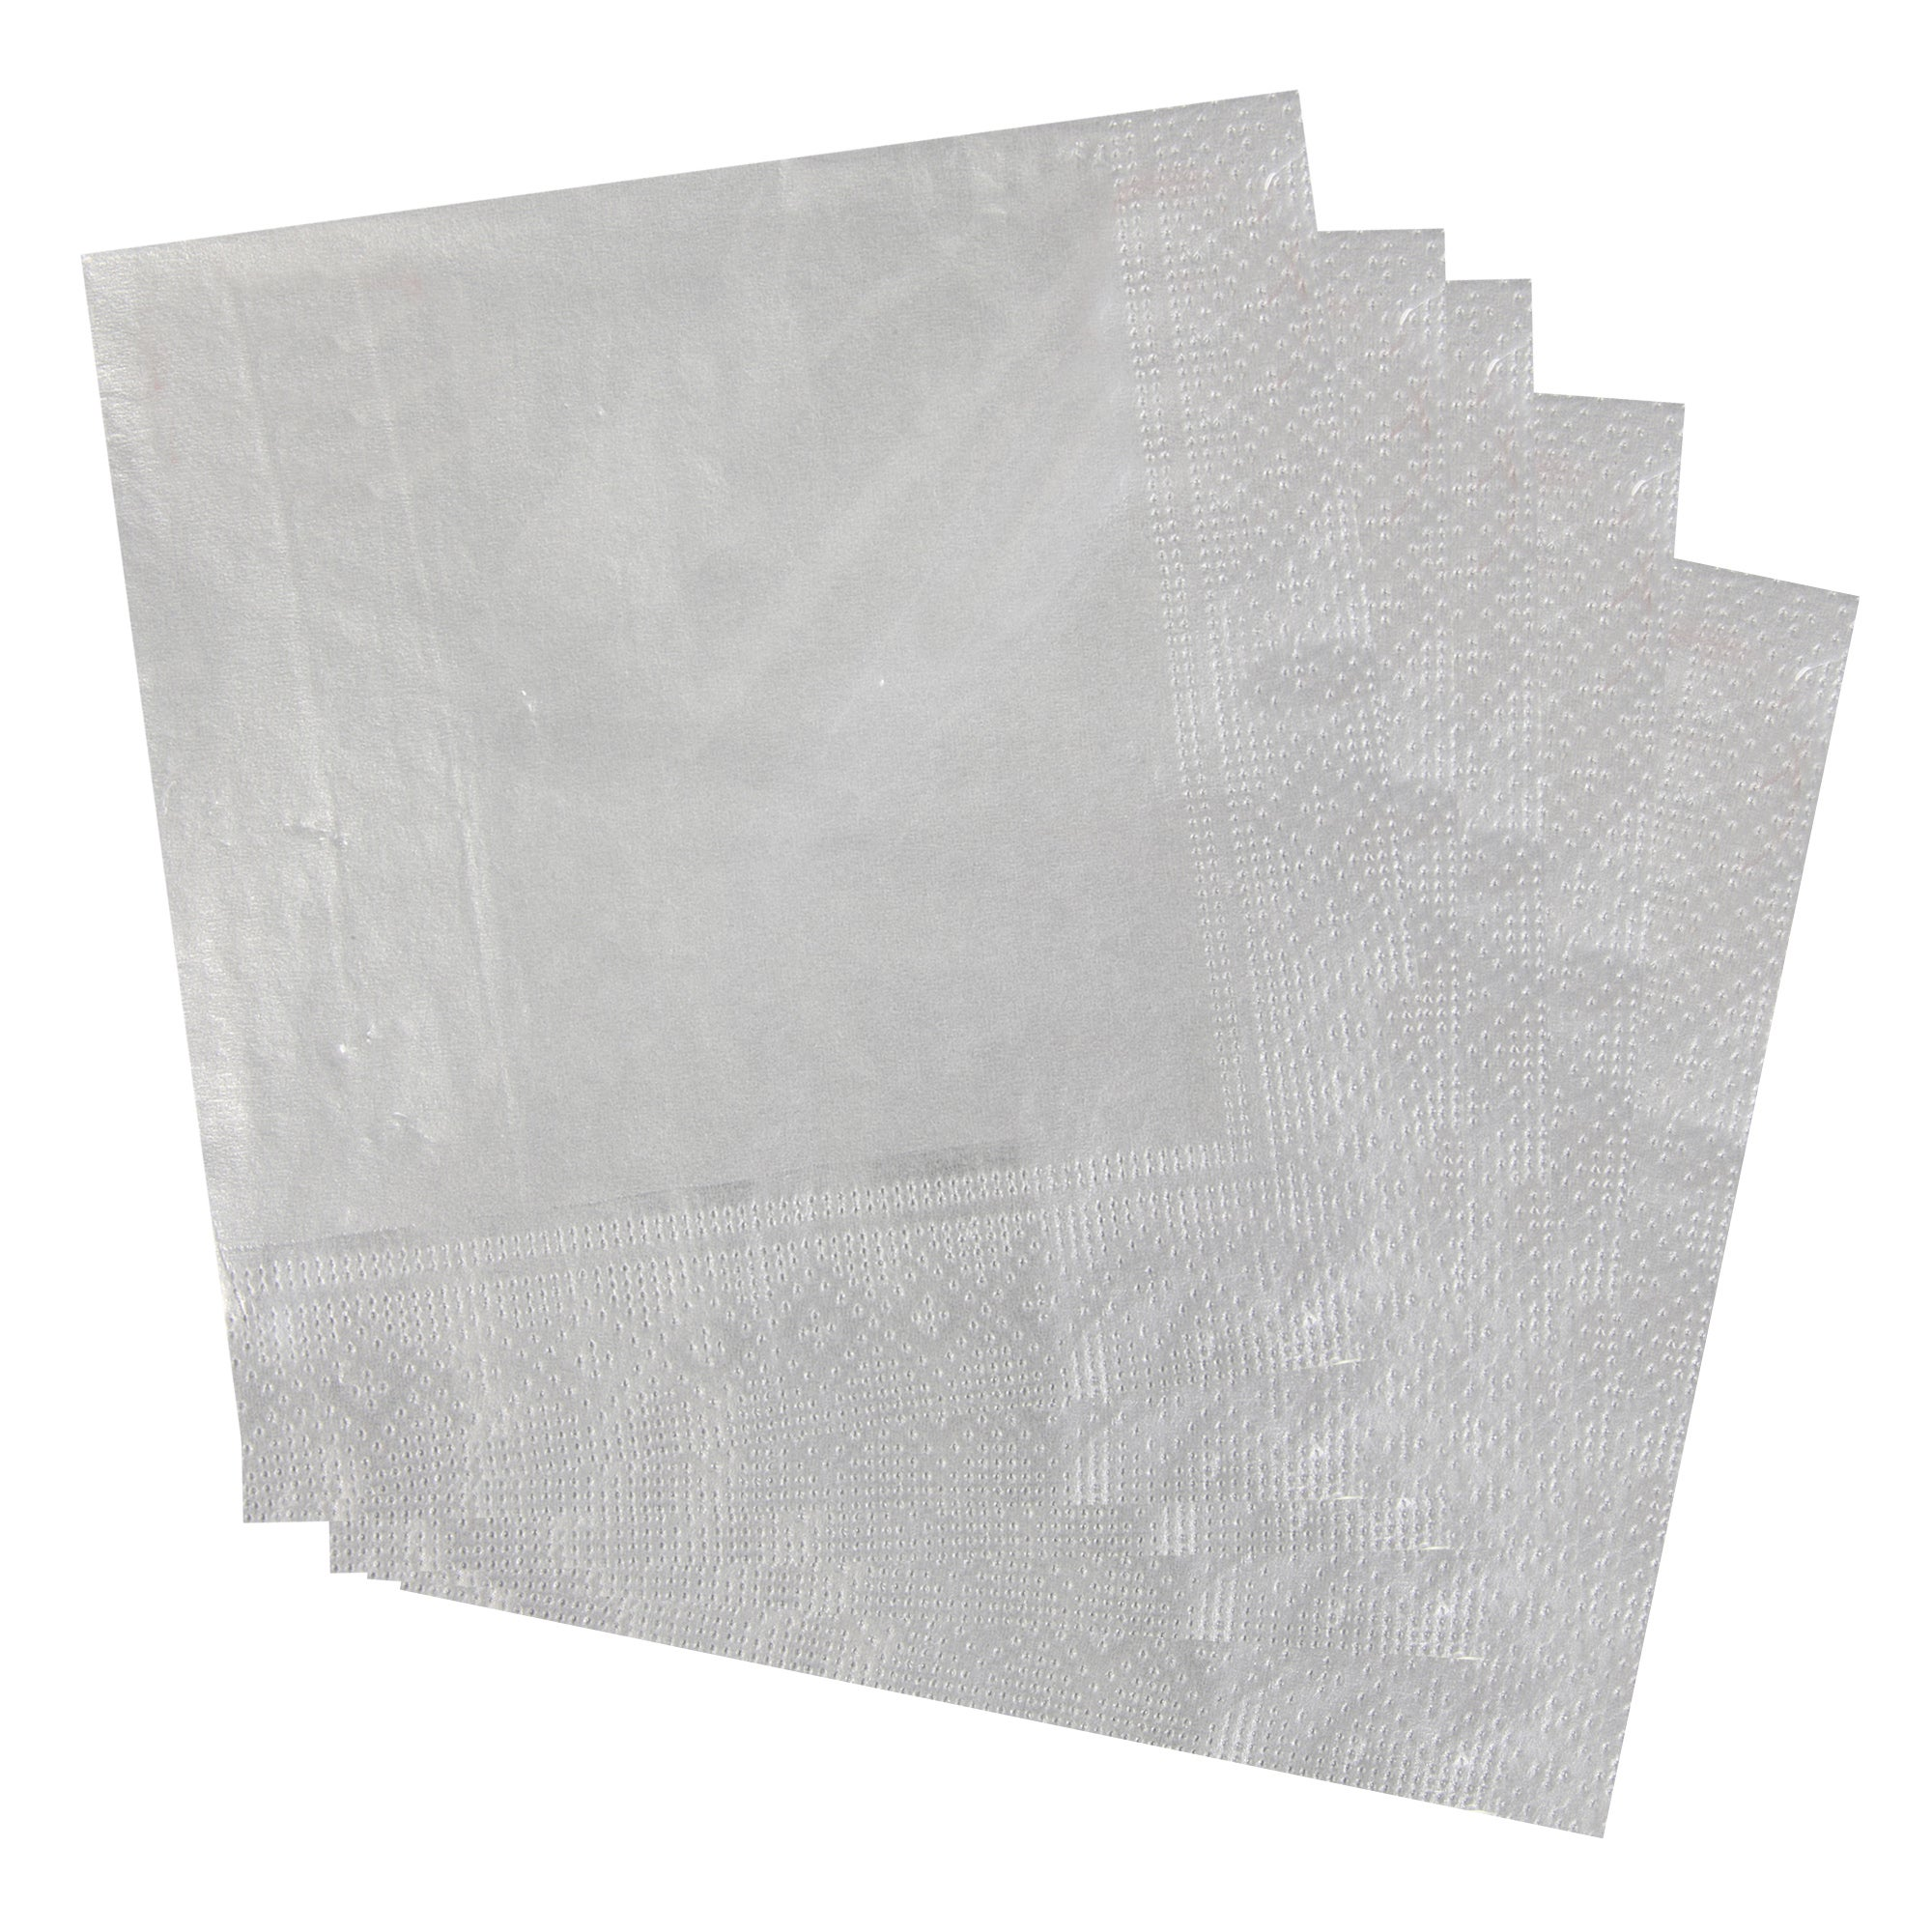 Pack of 20 Plain Paper Napkins